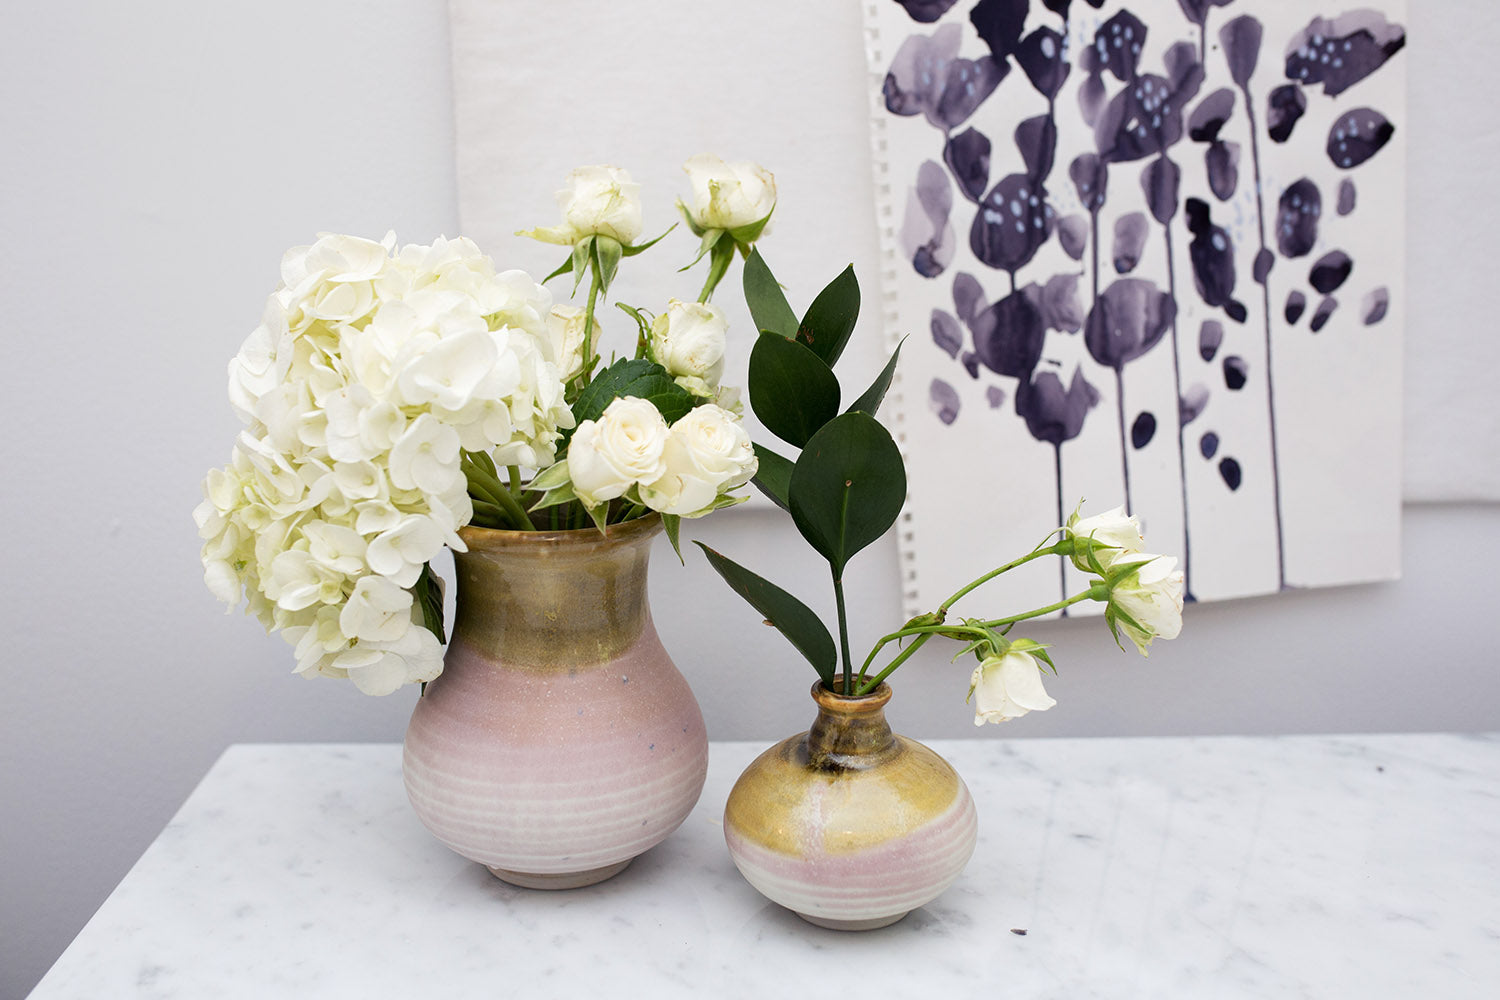 5 Things to Do Before A Friend Comes Over: Fresh Flowers